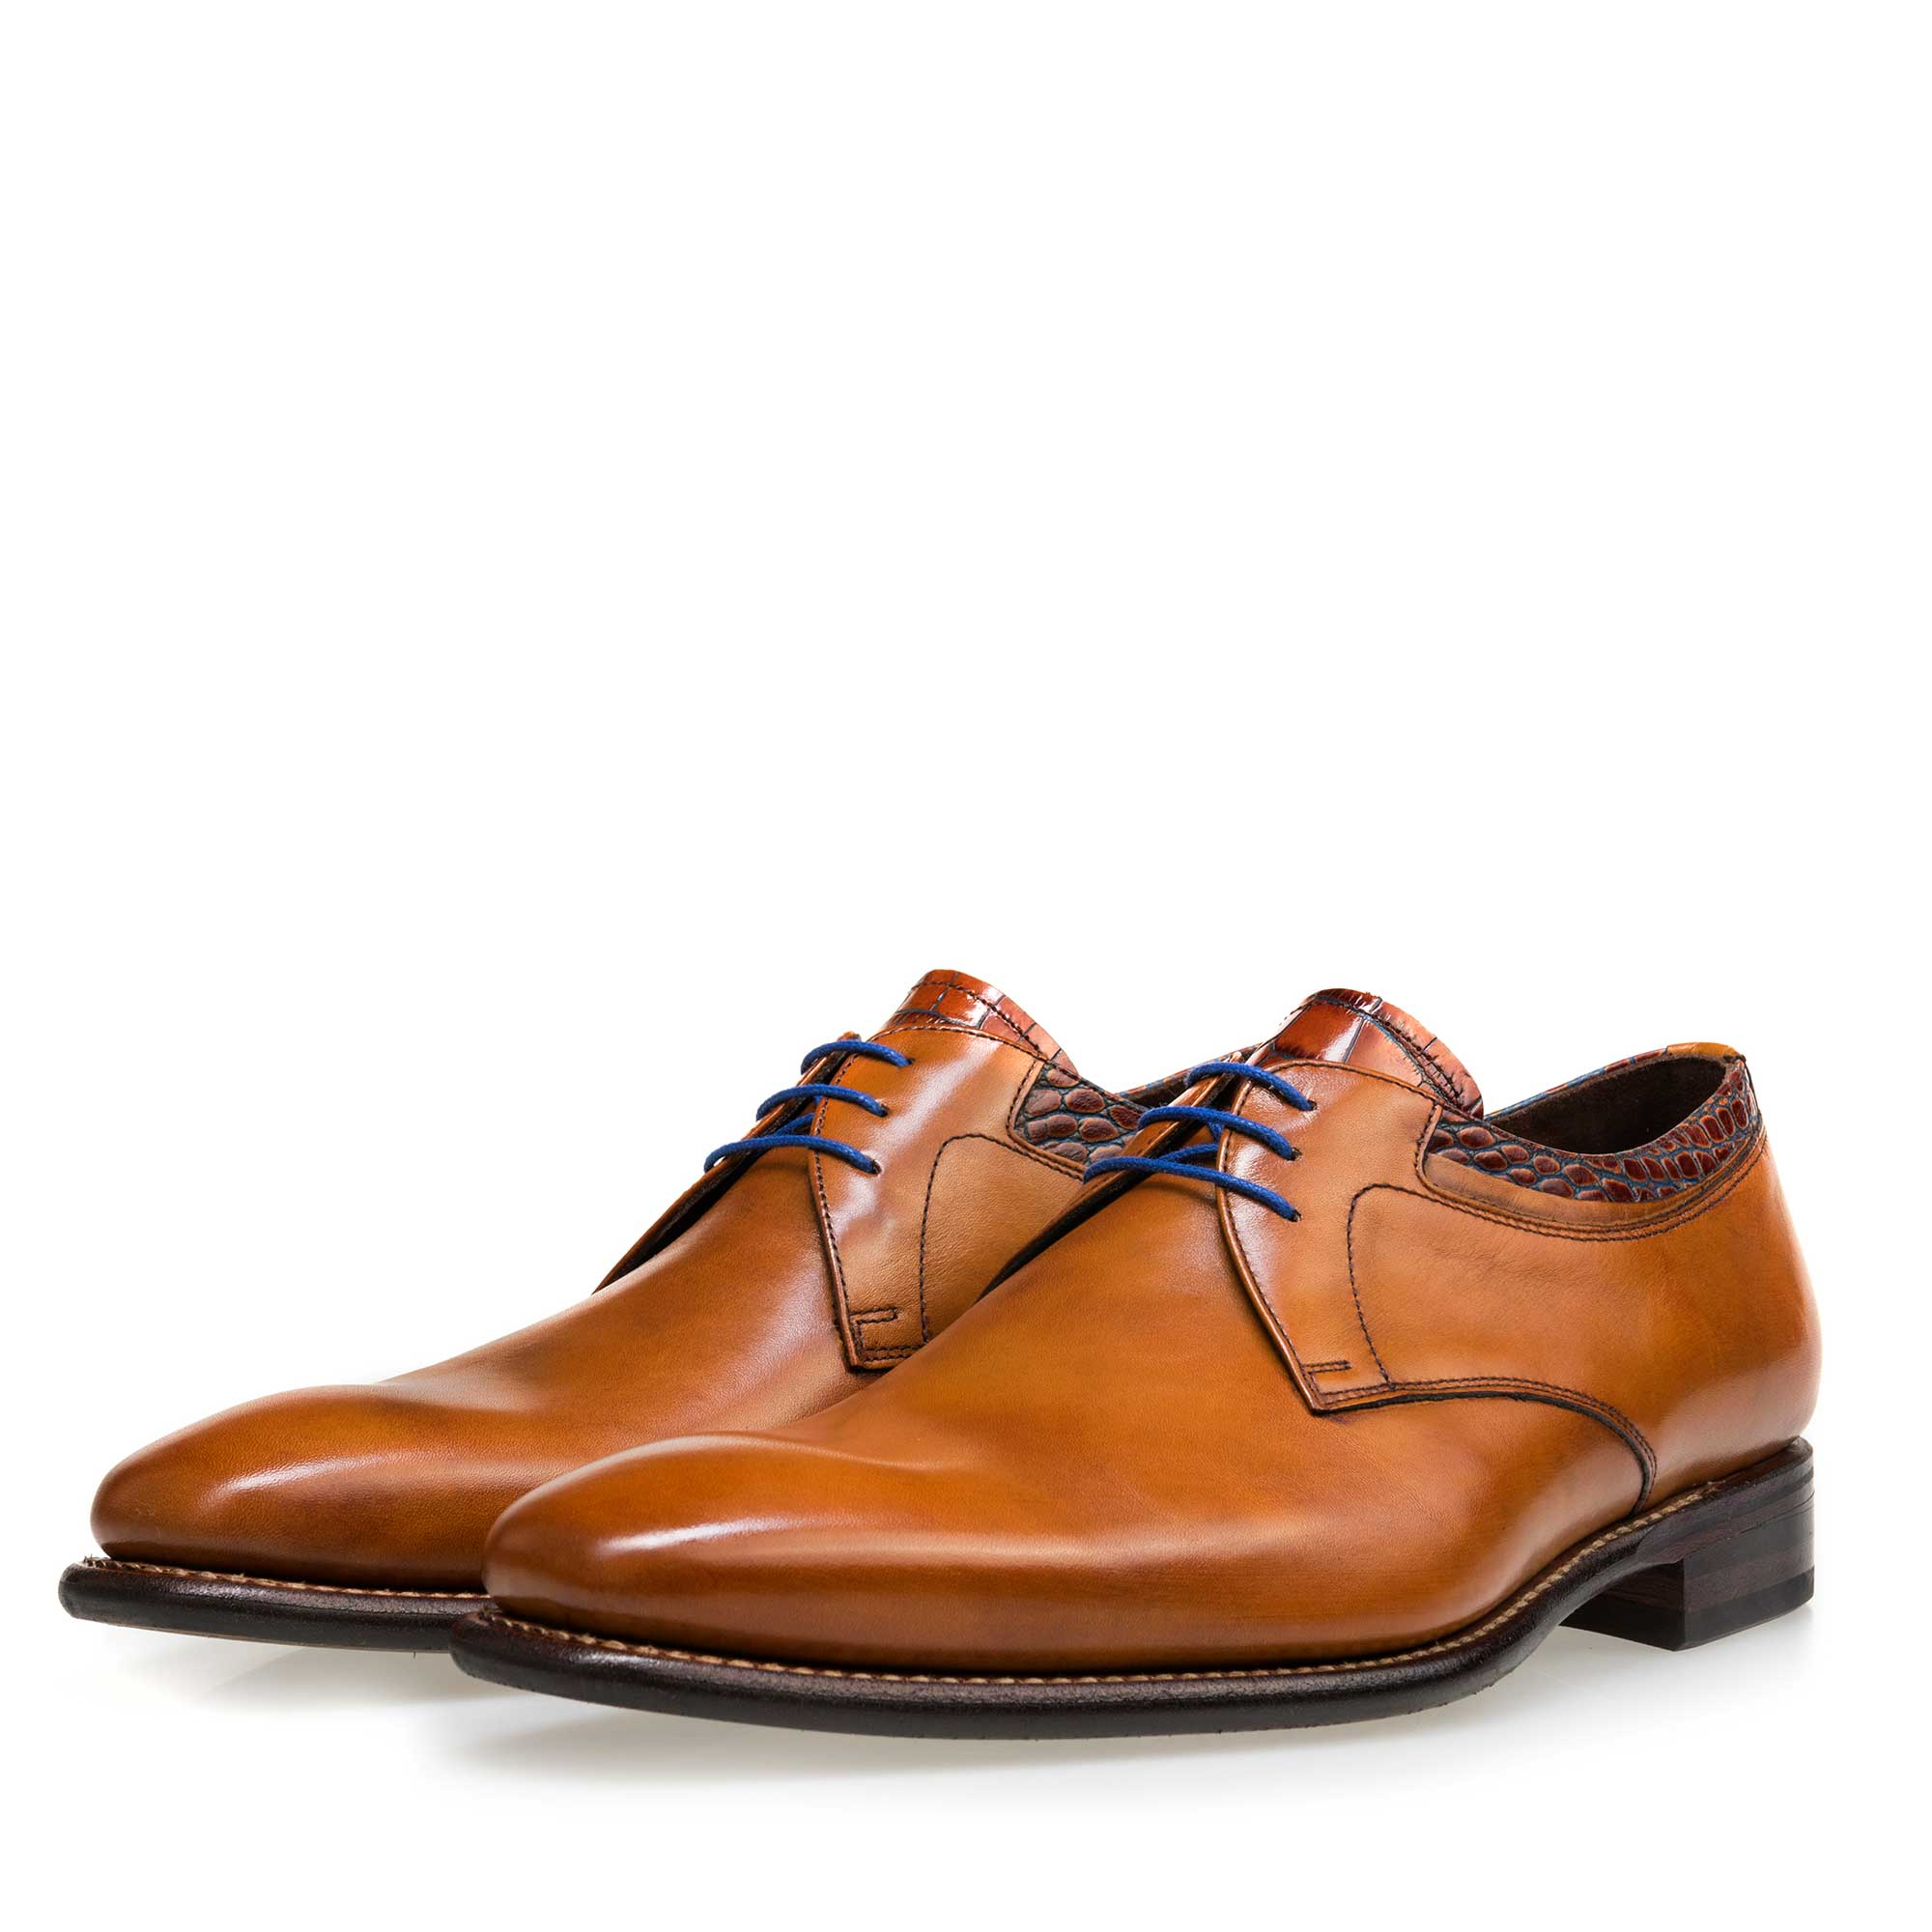 14302/00 - Floris van Bommel cognac leather men's lace-up shoe